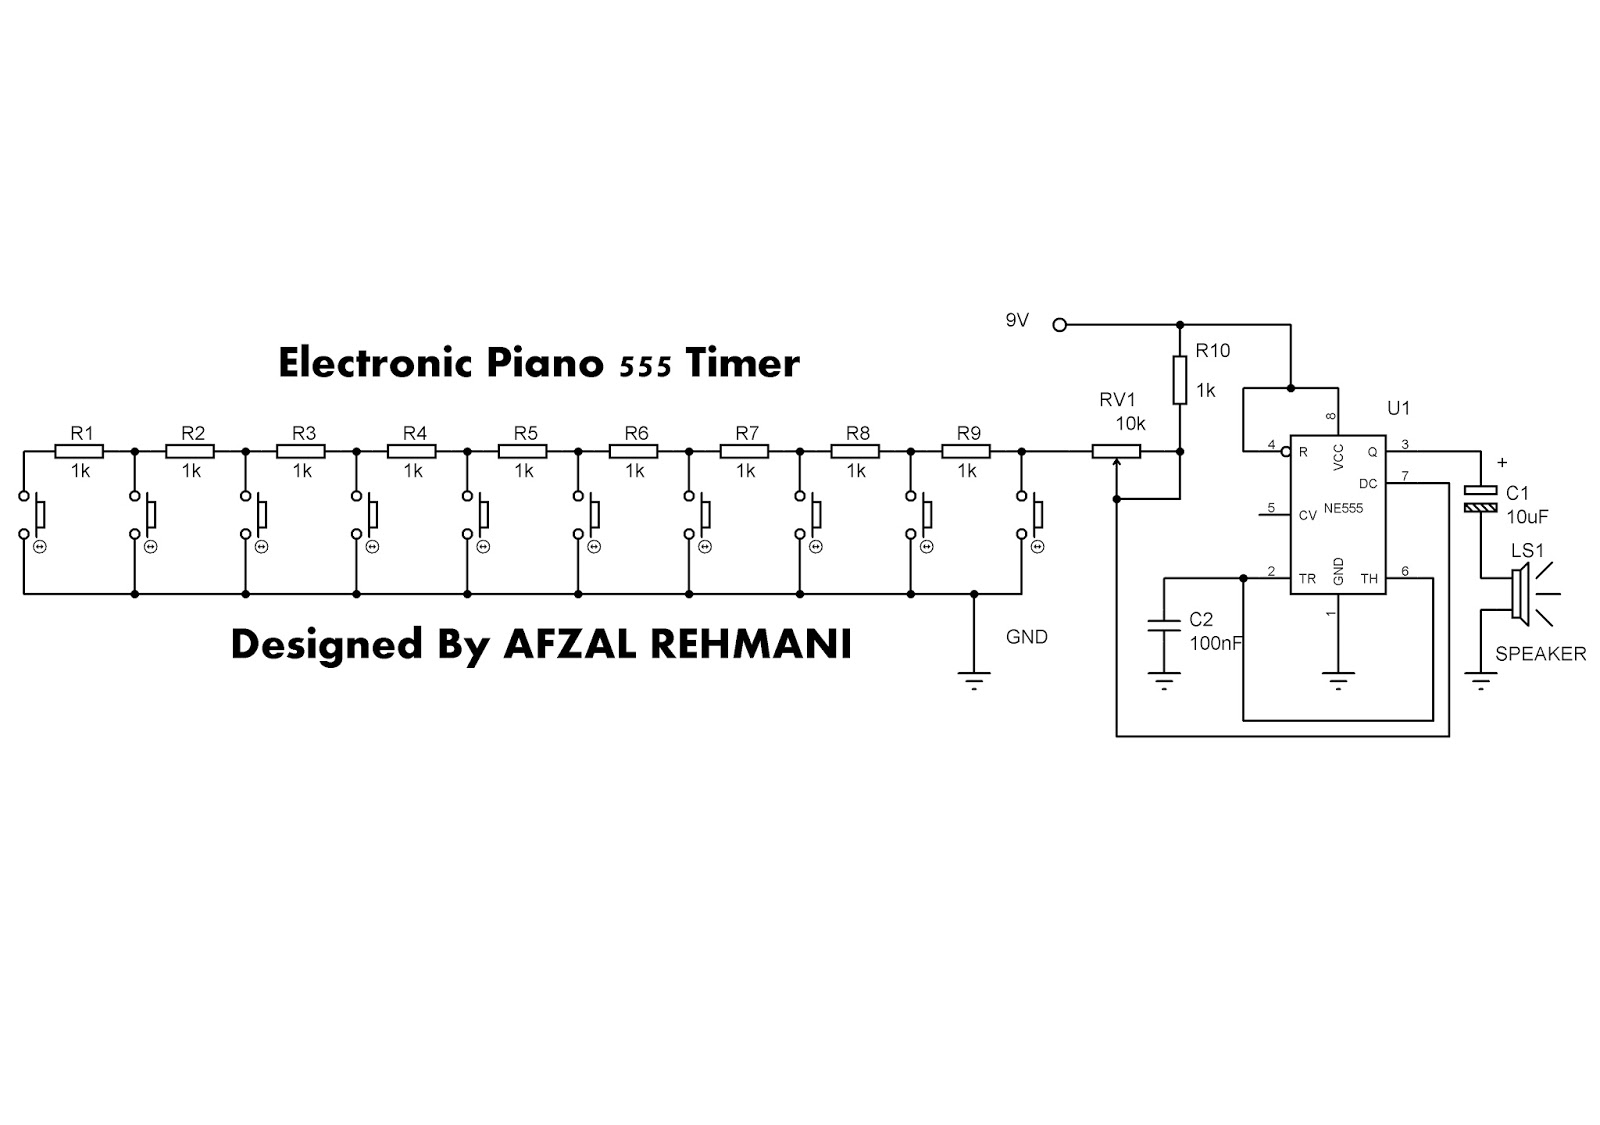 Wellcome To 360 Circuits: How to make electronic piano 555 timer